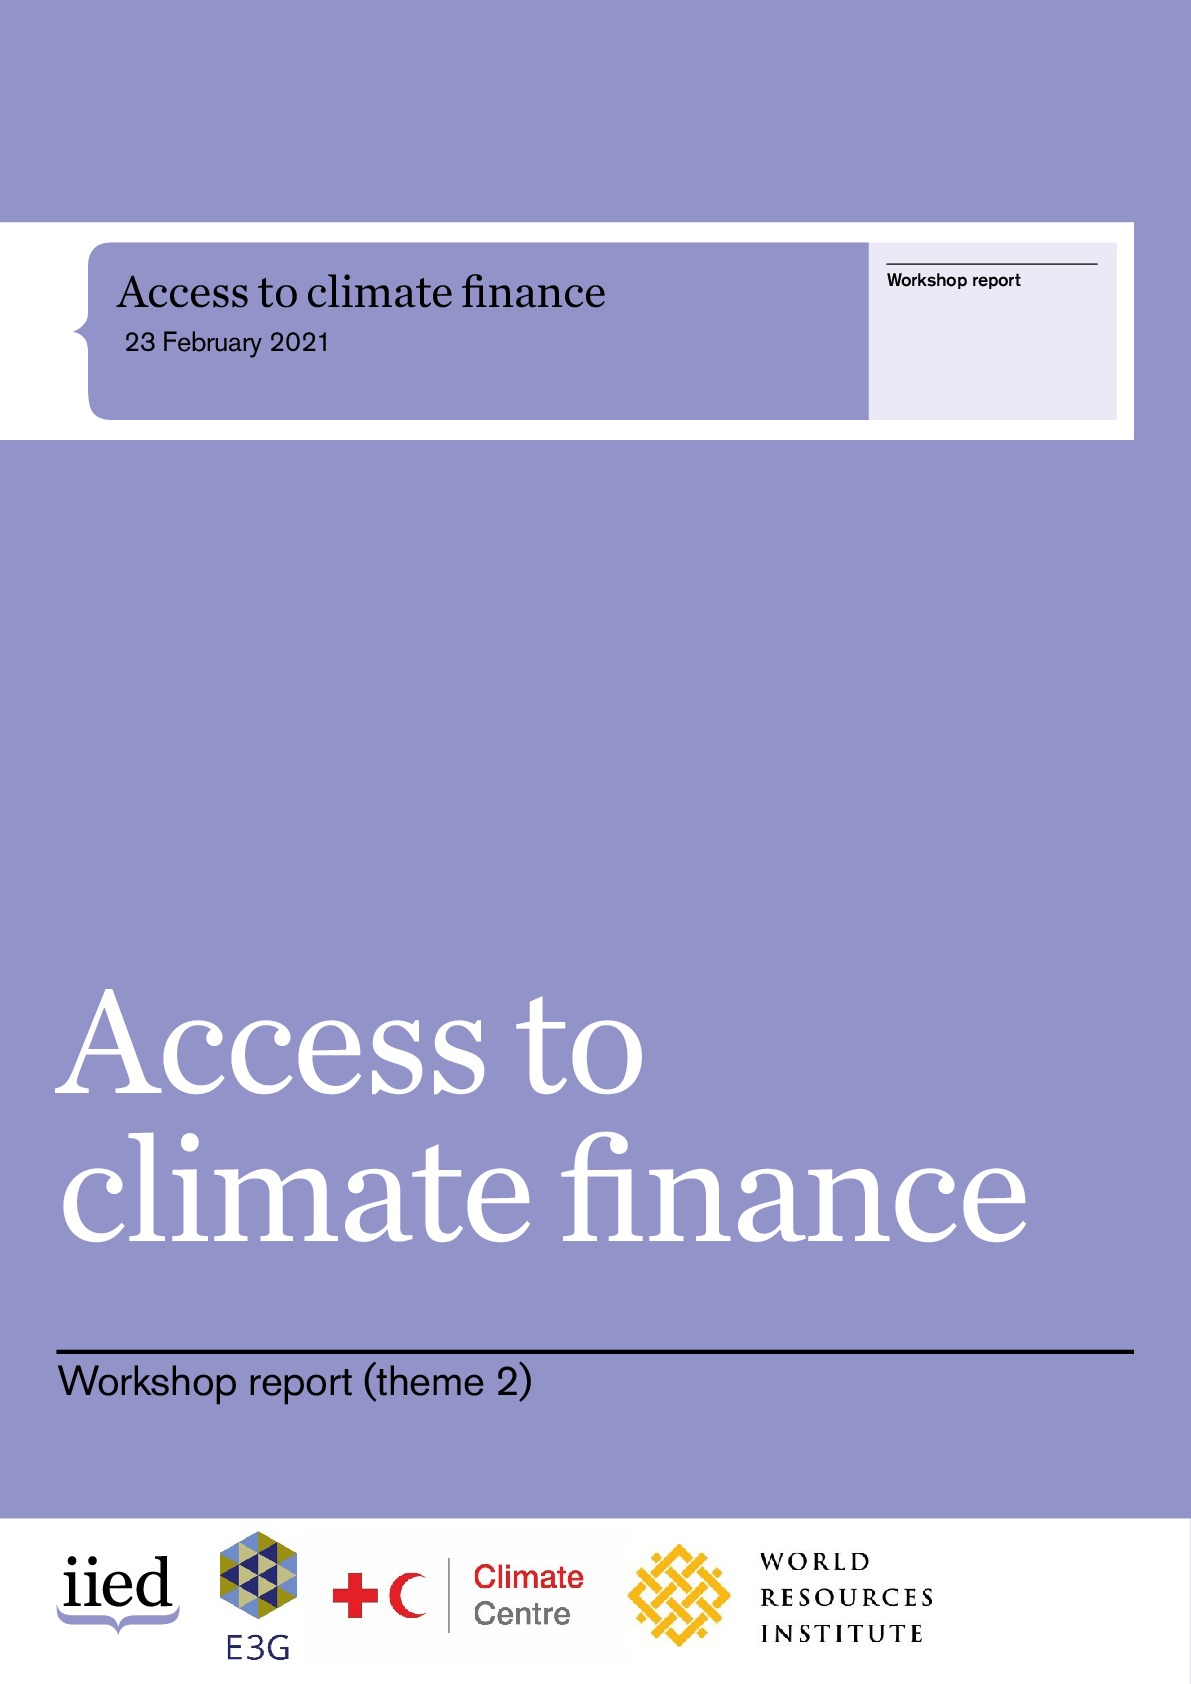 Access to climate finance - Workshop Report - 23 February 2021